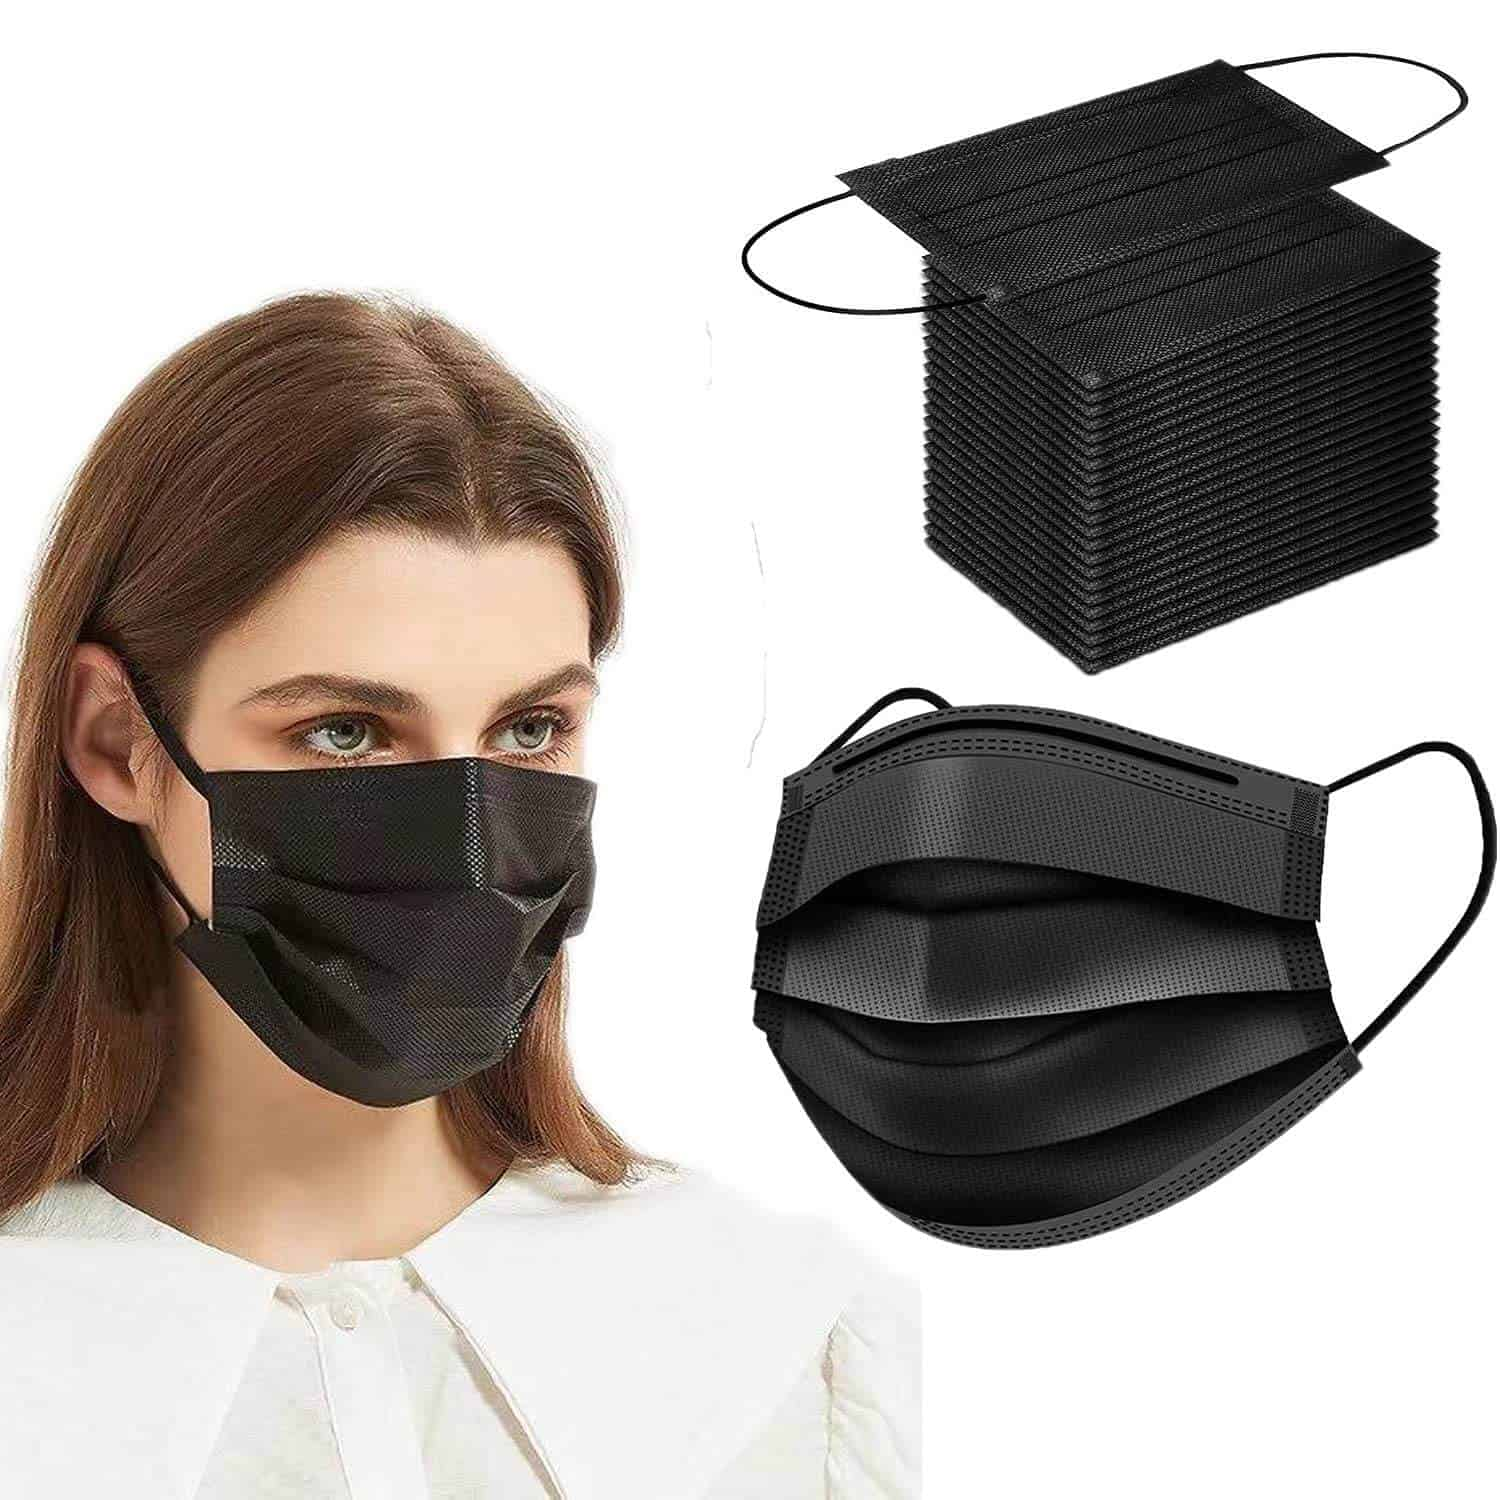 Face Mask For Safety